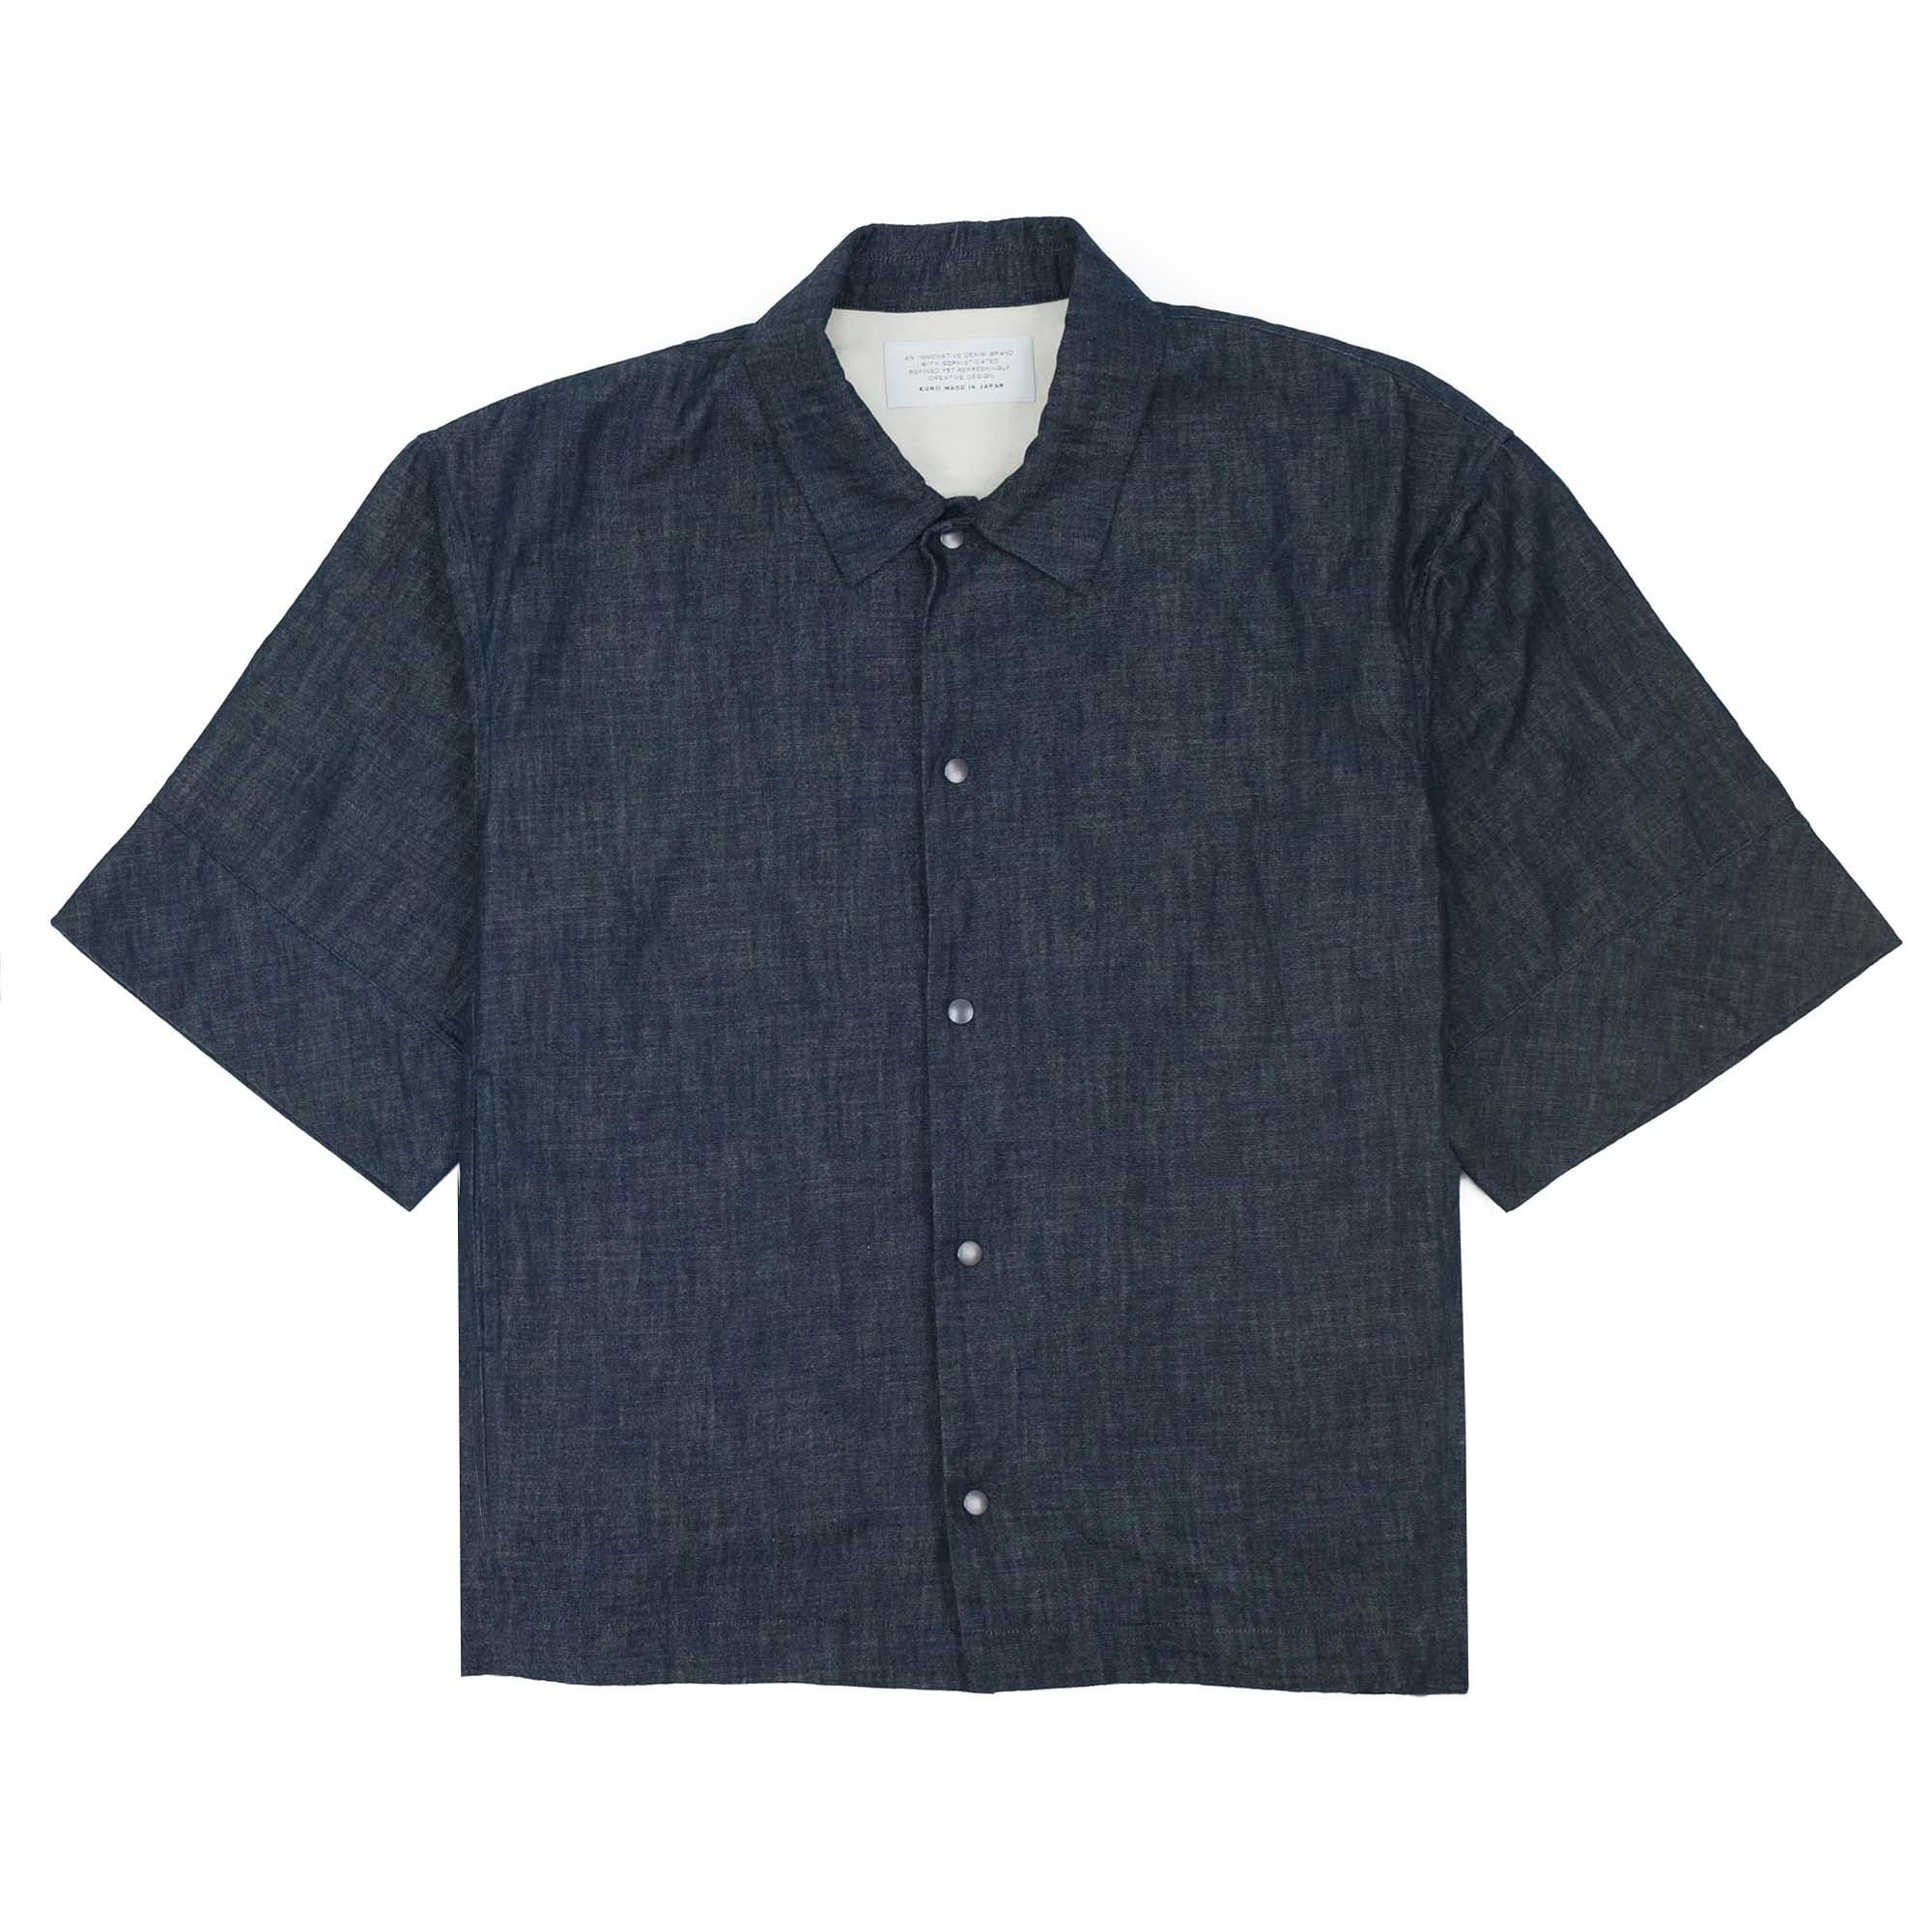 Kuro Denim Short Sleeve Coach Jacket - Indigo